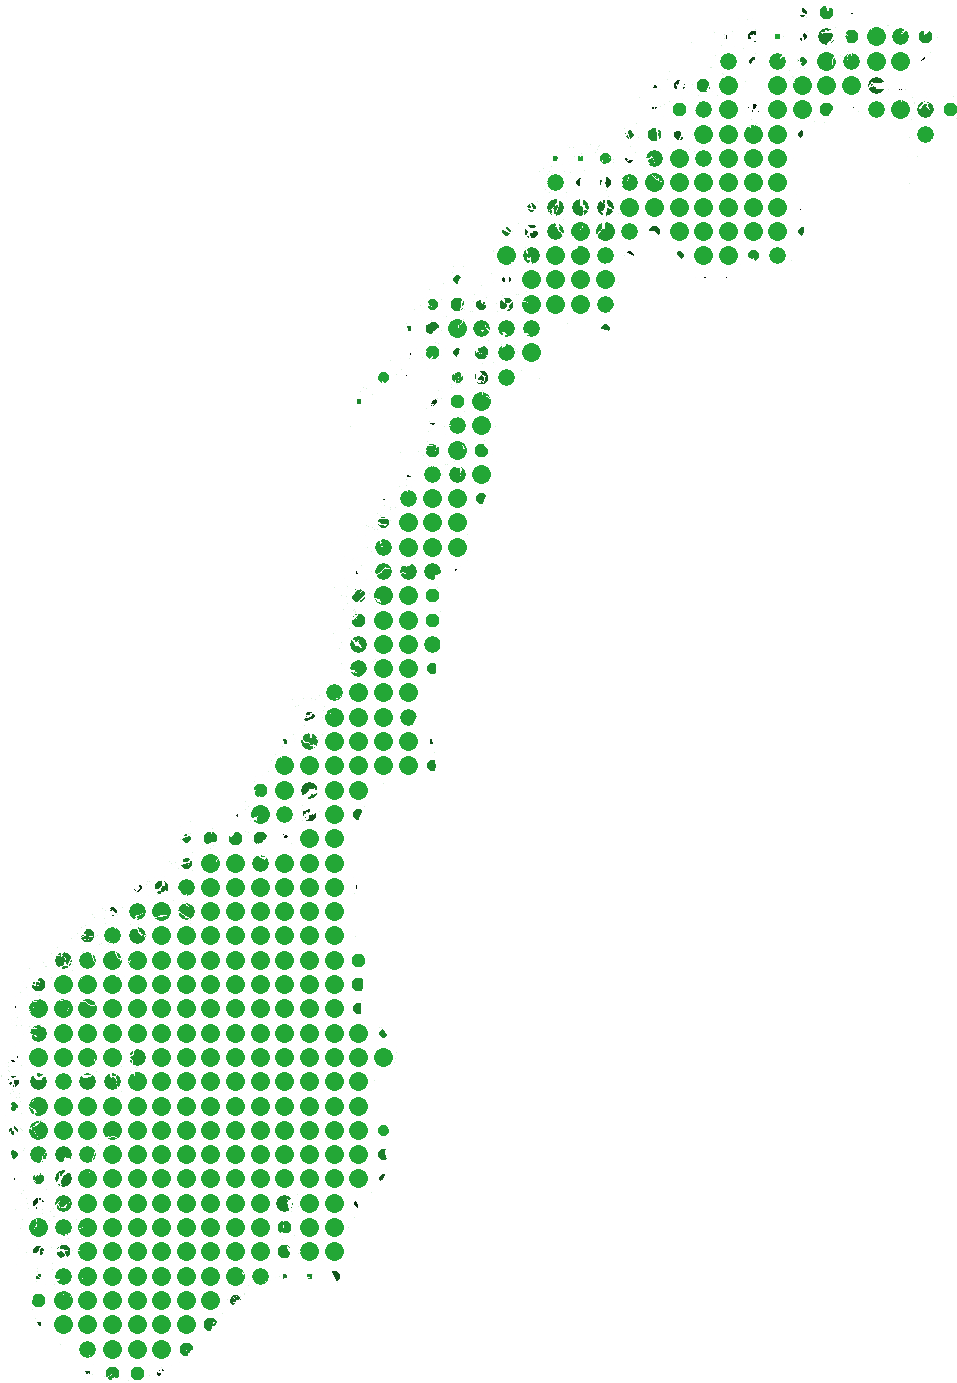 norway-dots.png